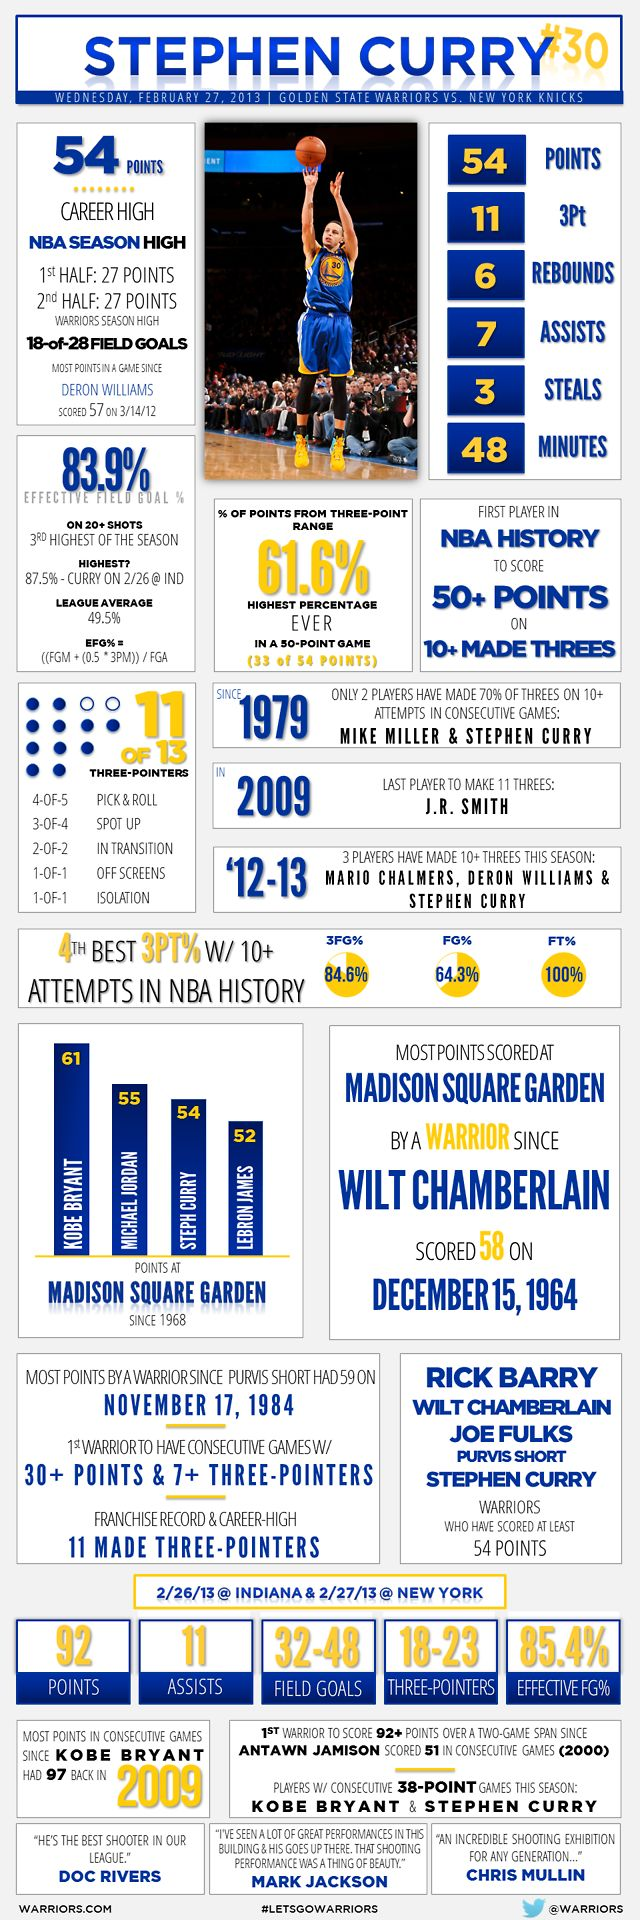 Great job @Julie Phayer!! An infographic look at Stephen Curry's historic 54-point performance against the New York Knicks on February 27, 2013.